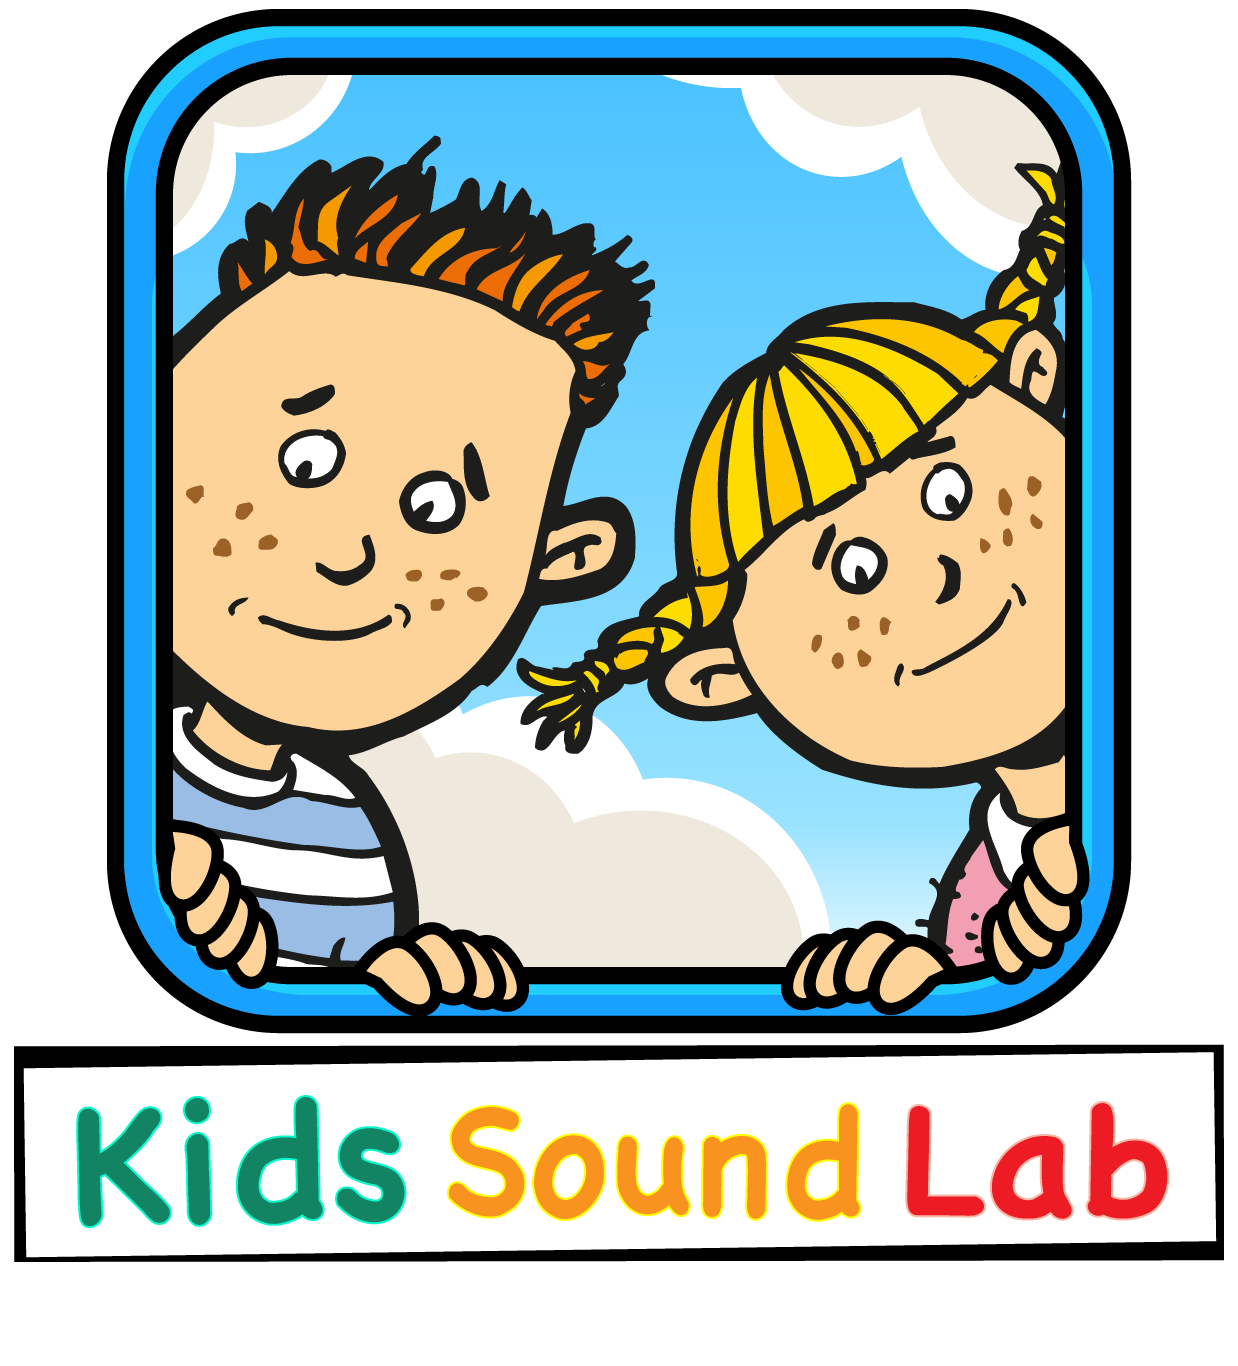 Lab clipart pathologist. Learning and playing with